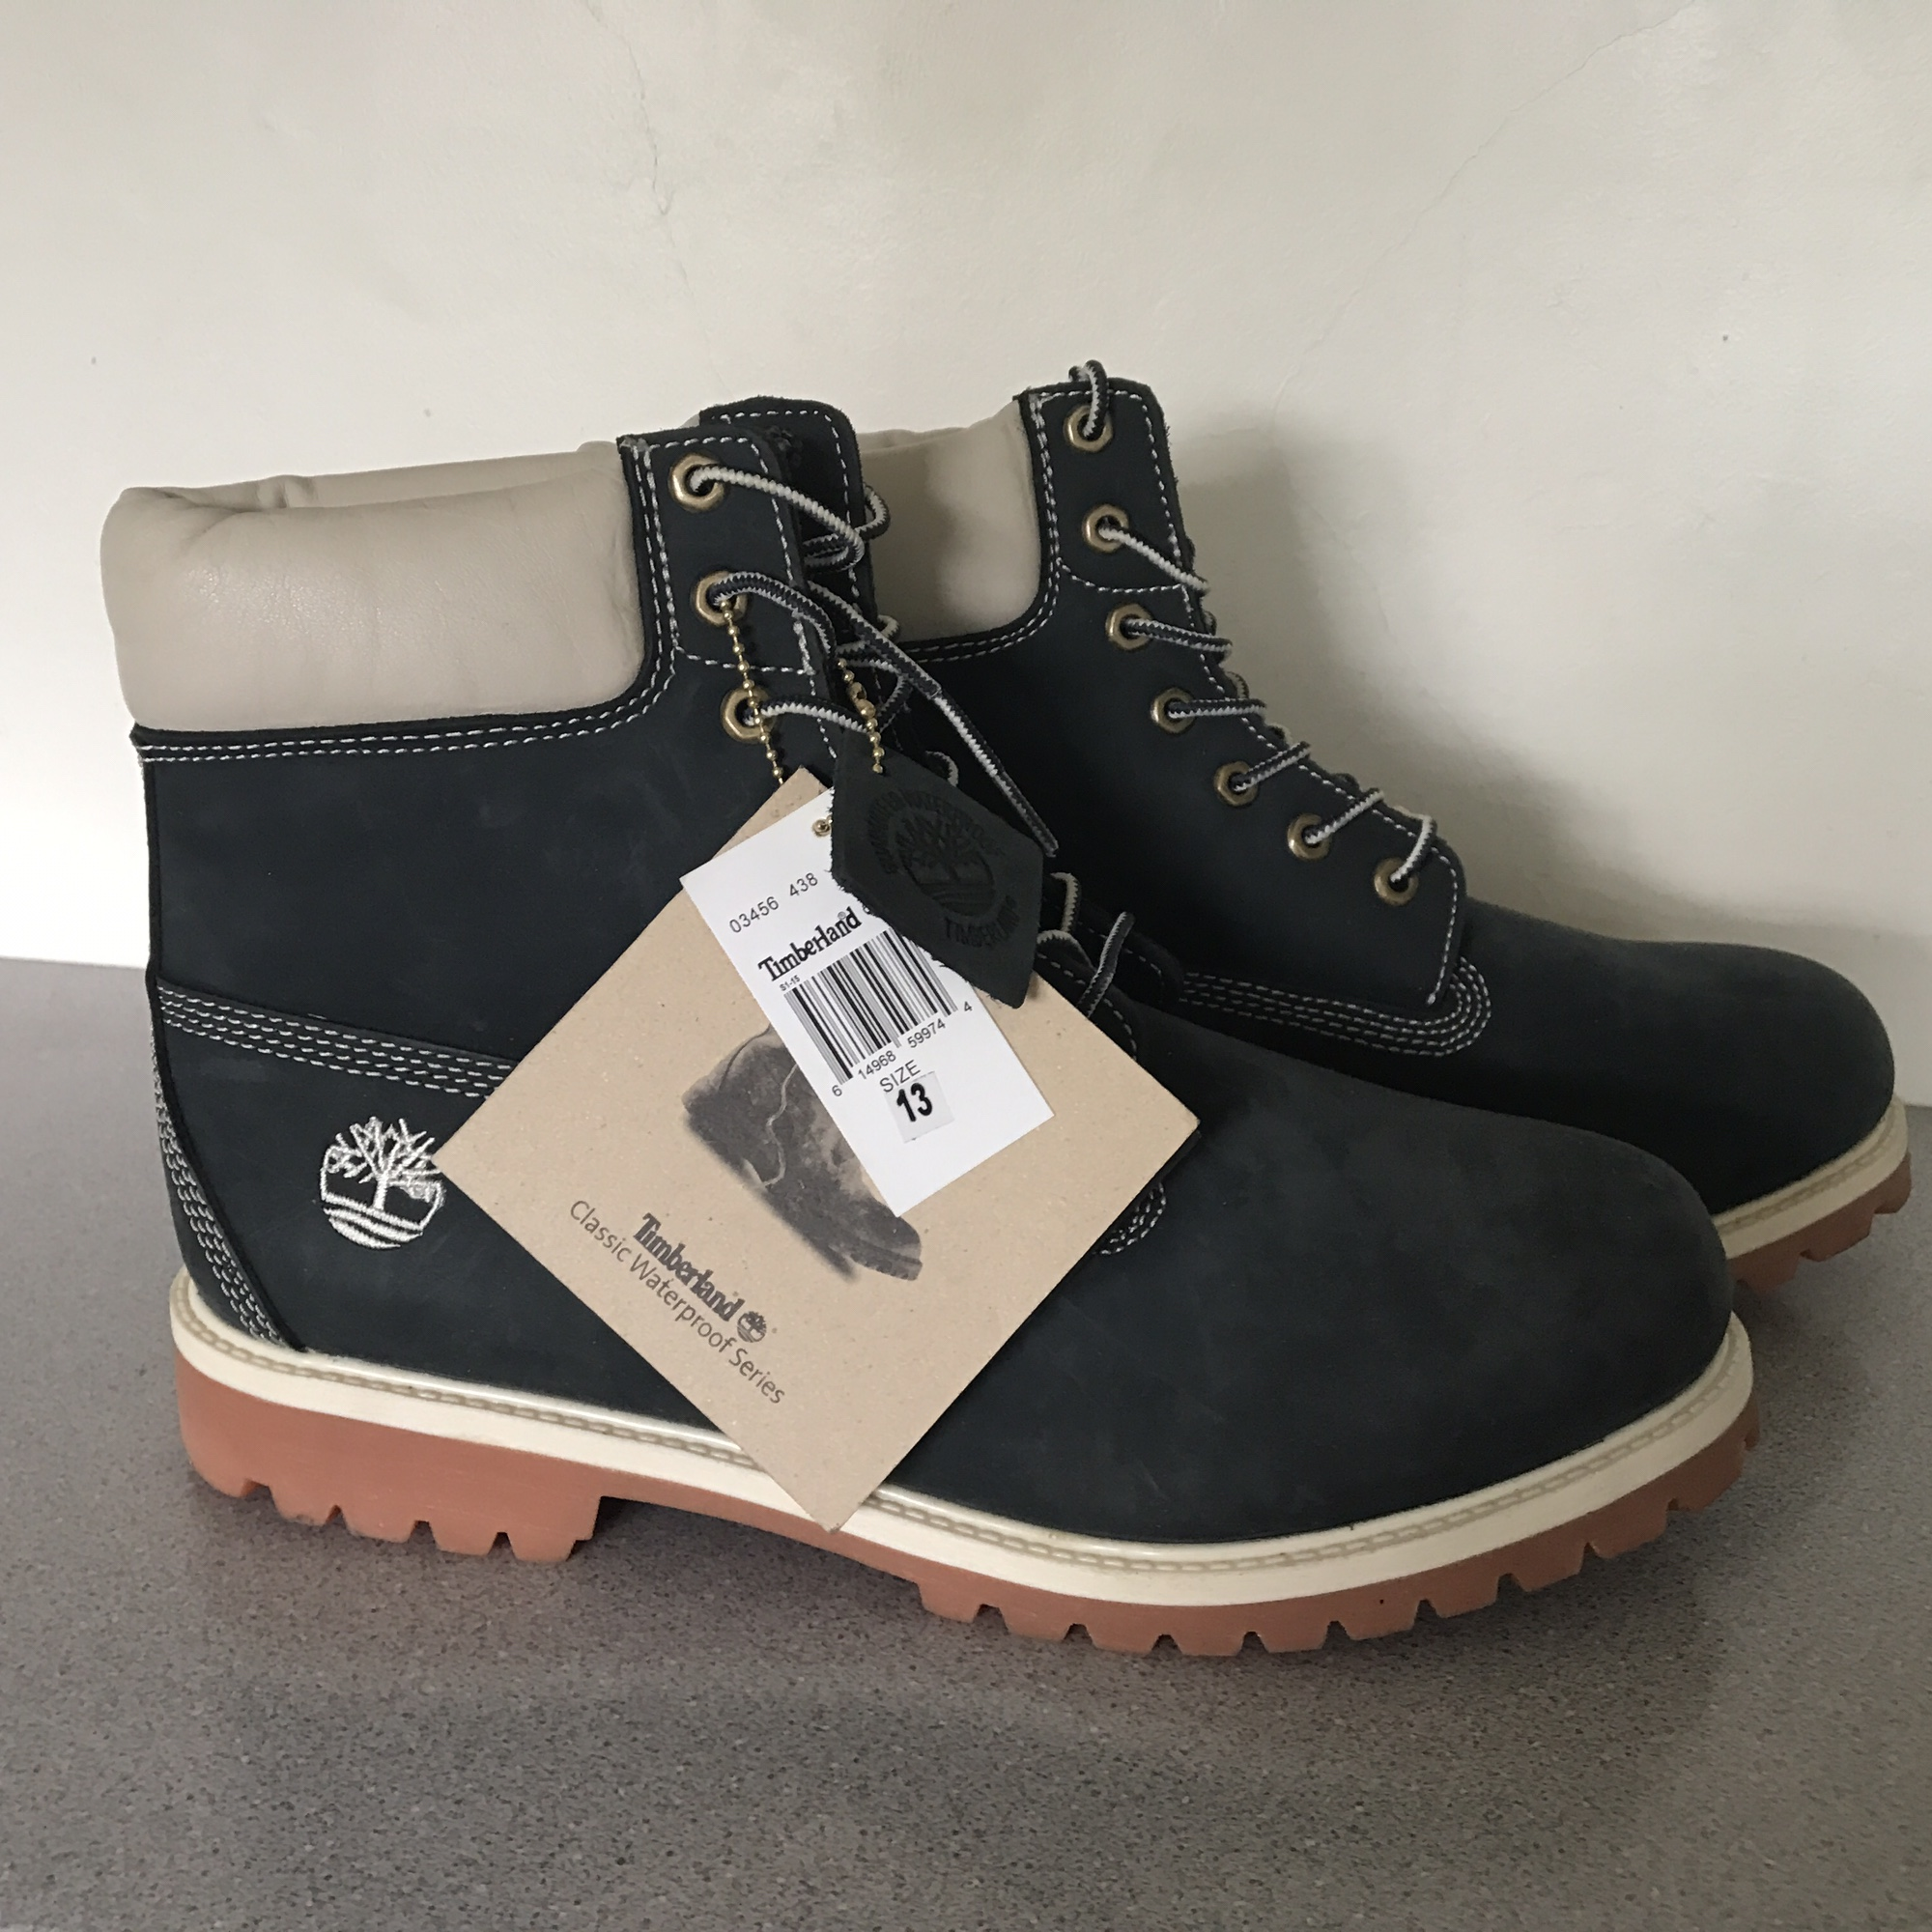 Men's Timberland Boots NEW with Tags Size 13 Depop